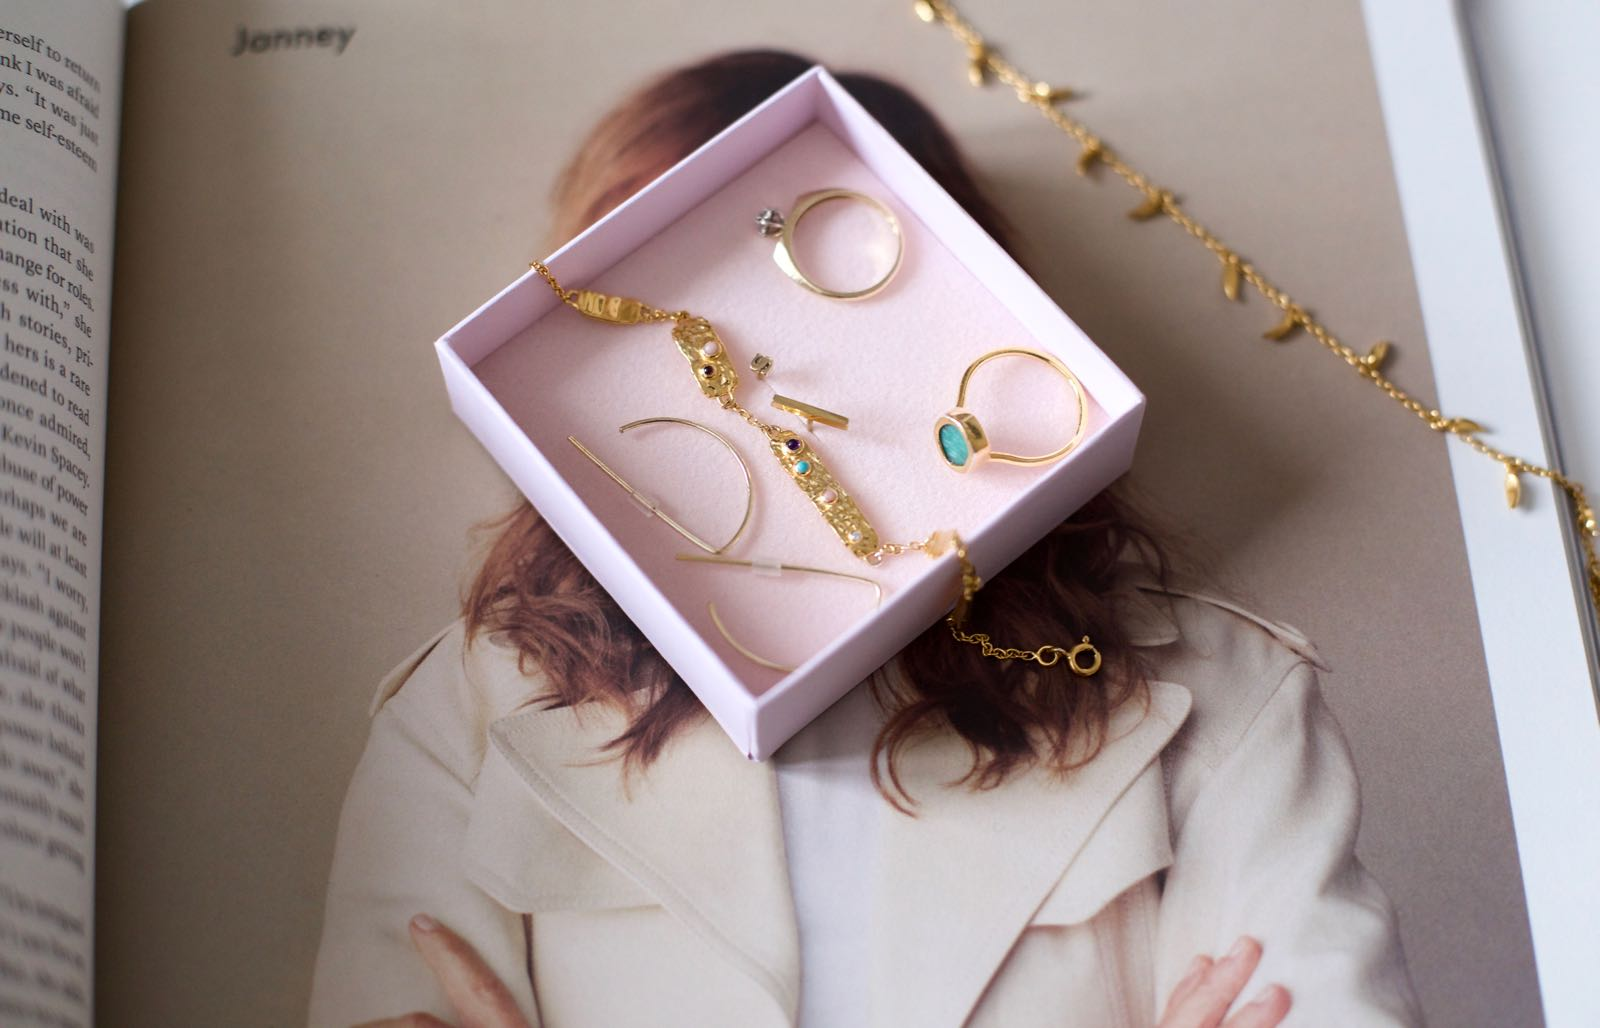 Clockwise: Vintage ring / (outside the box)  Lucy Williams x Missoma Fang necklace  /Monica Vinader Amazonite ring (similar  here ) / Catbird 'S' stud earring / Mejuri bar stud earring /  Maanesten Bourne bracelet  / & Other Stories earrings